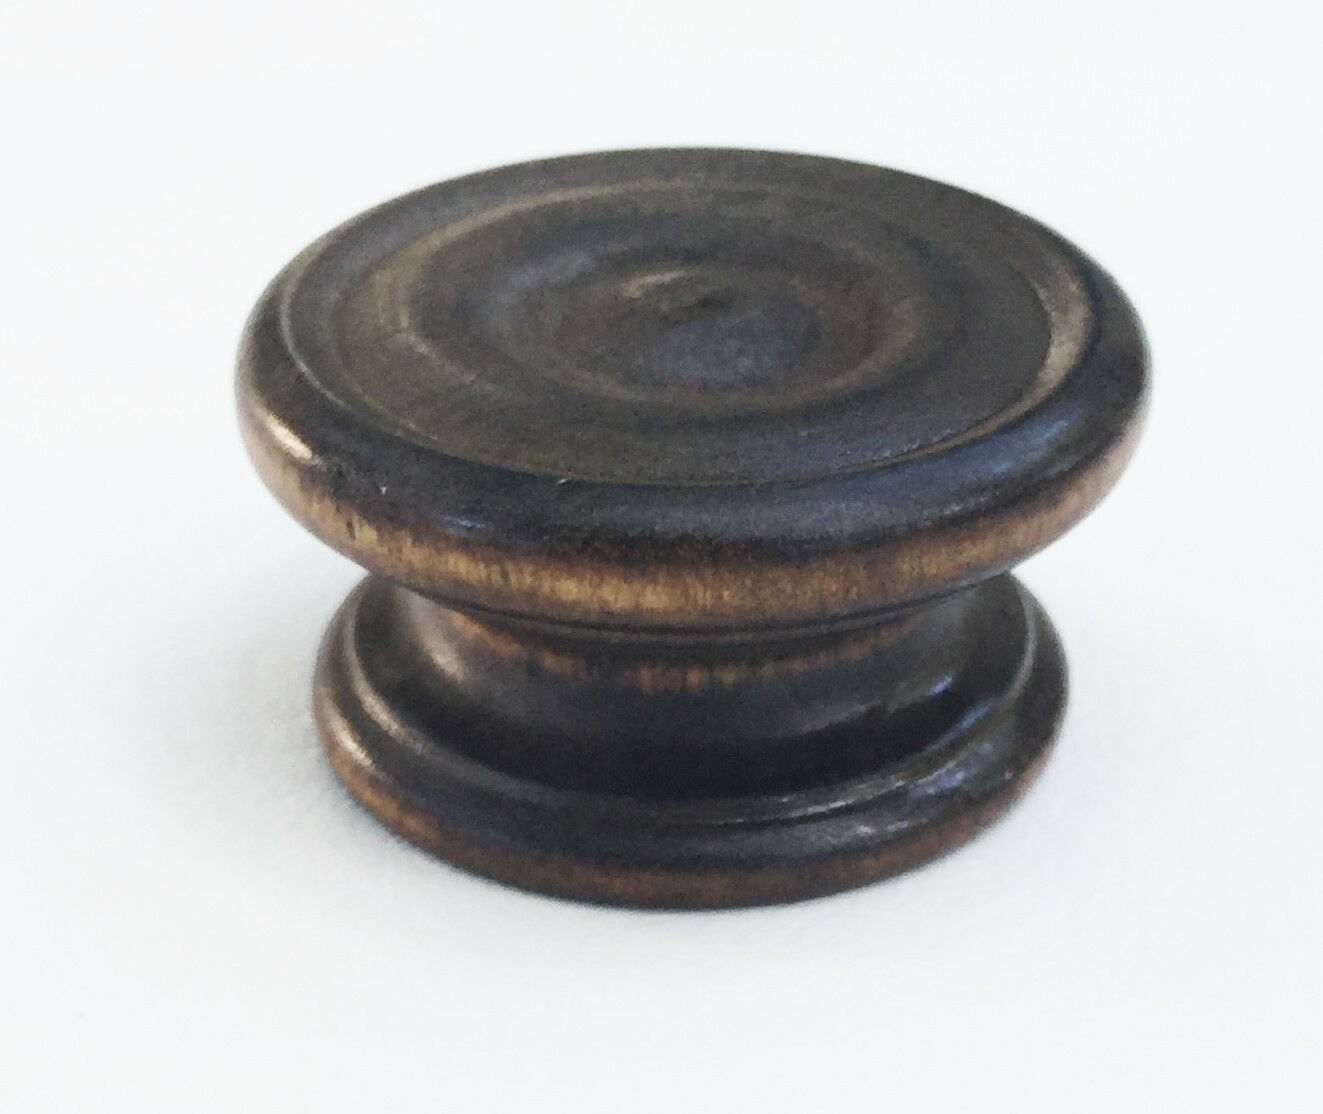 Antique Hardware Drawer Pull Maple Wood Knob Furniture Part Dresser Knob